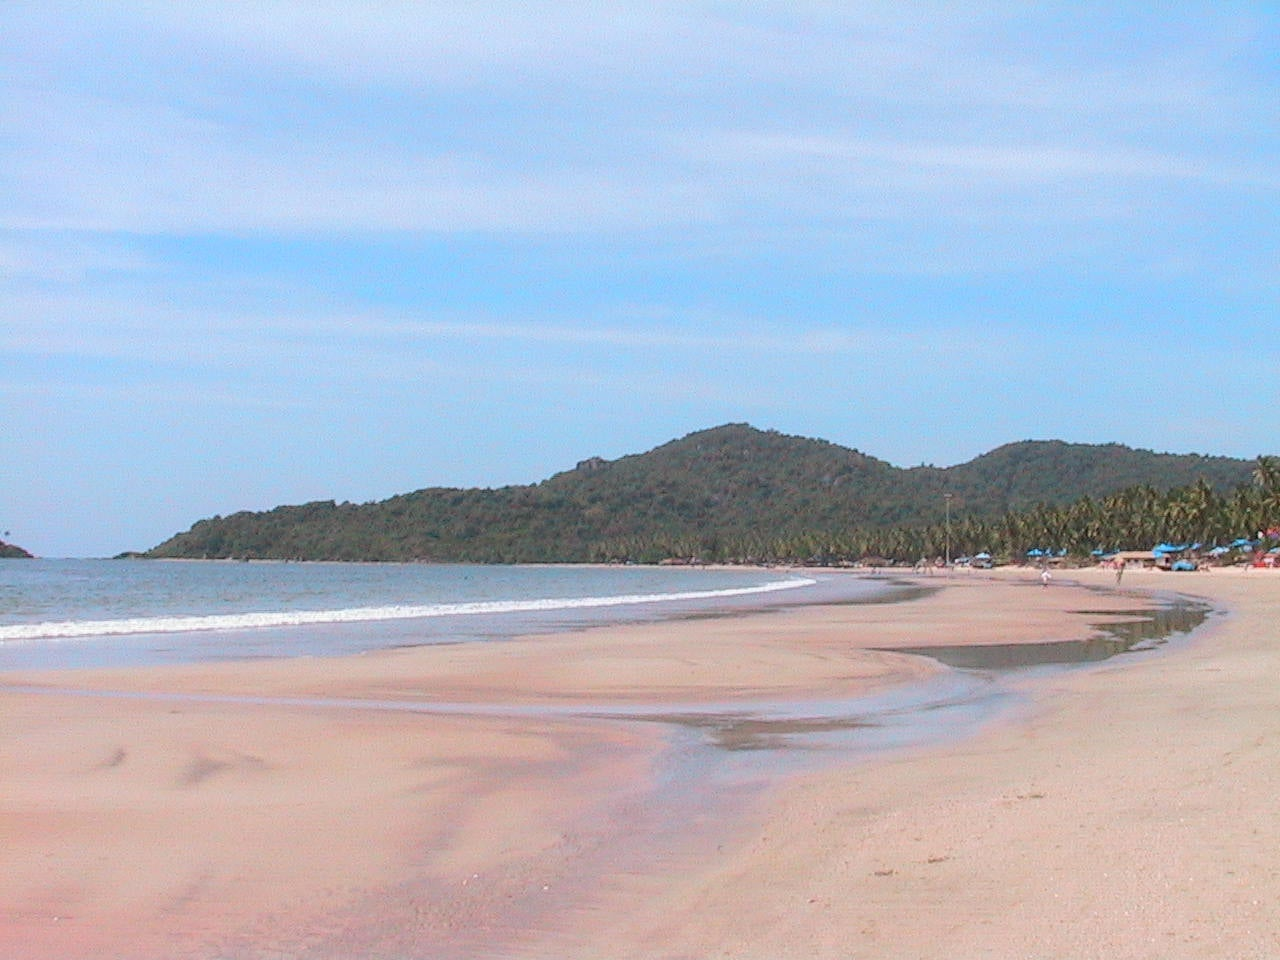 Embalse en Playa de Goa